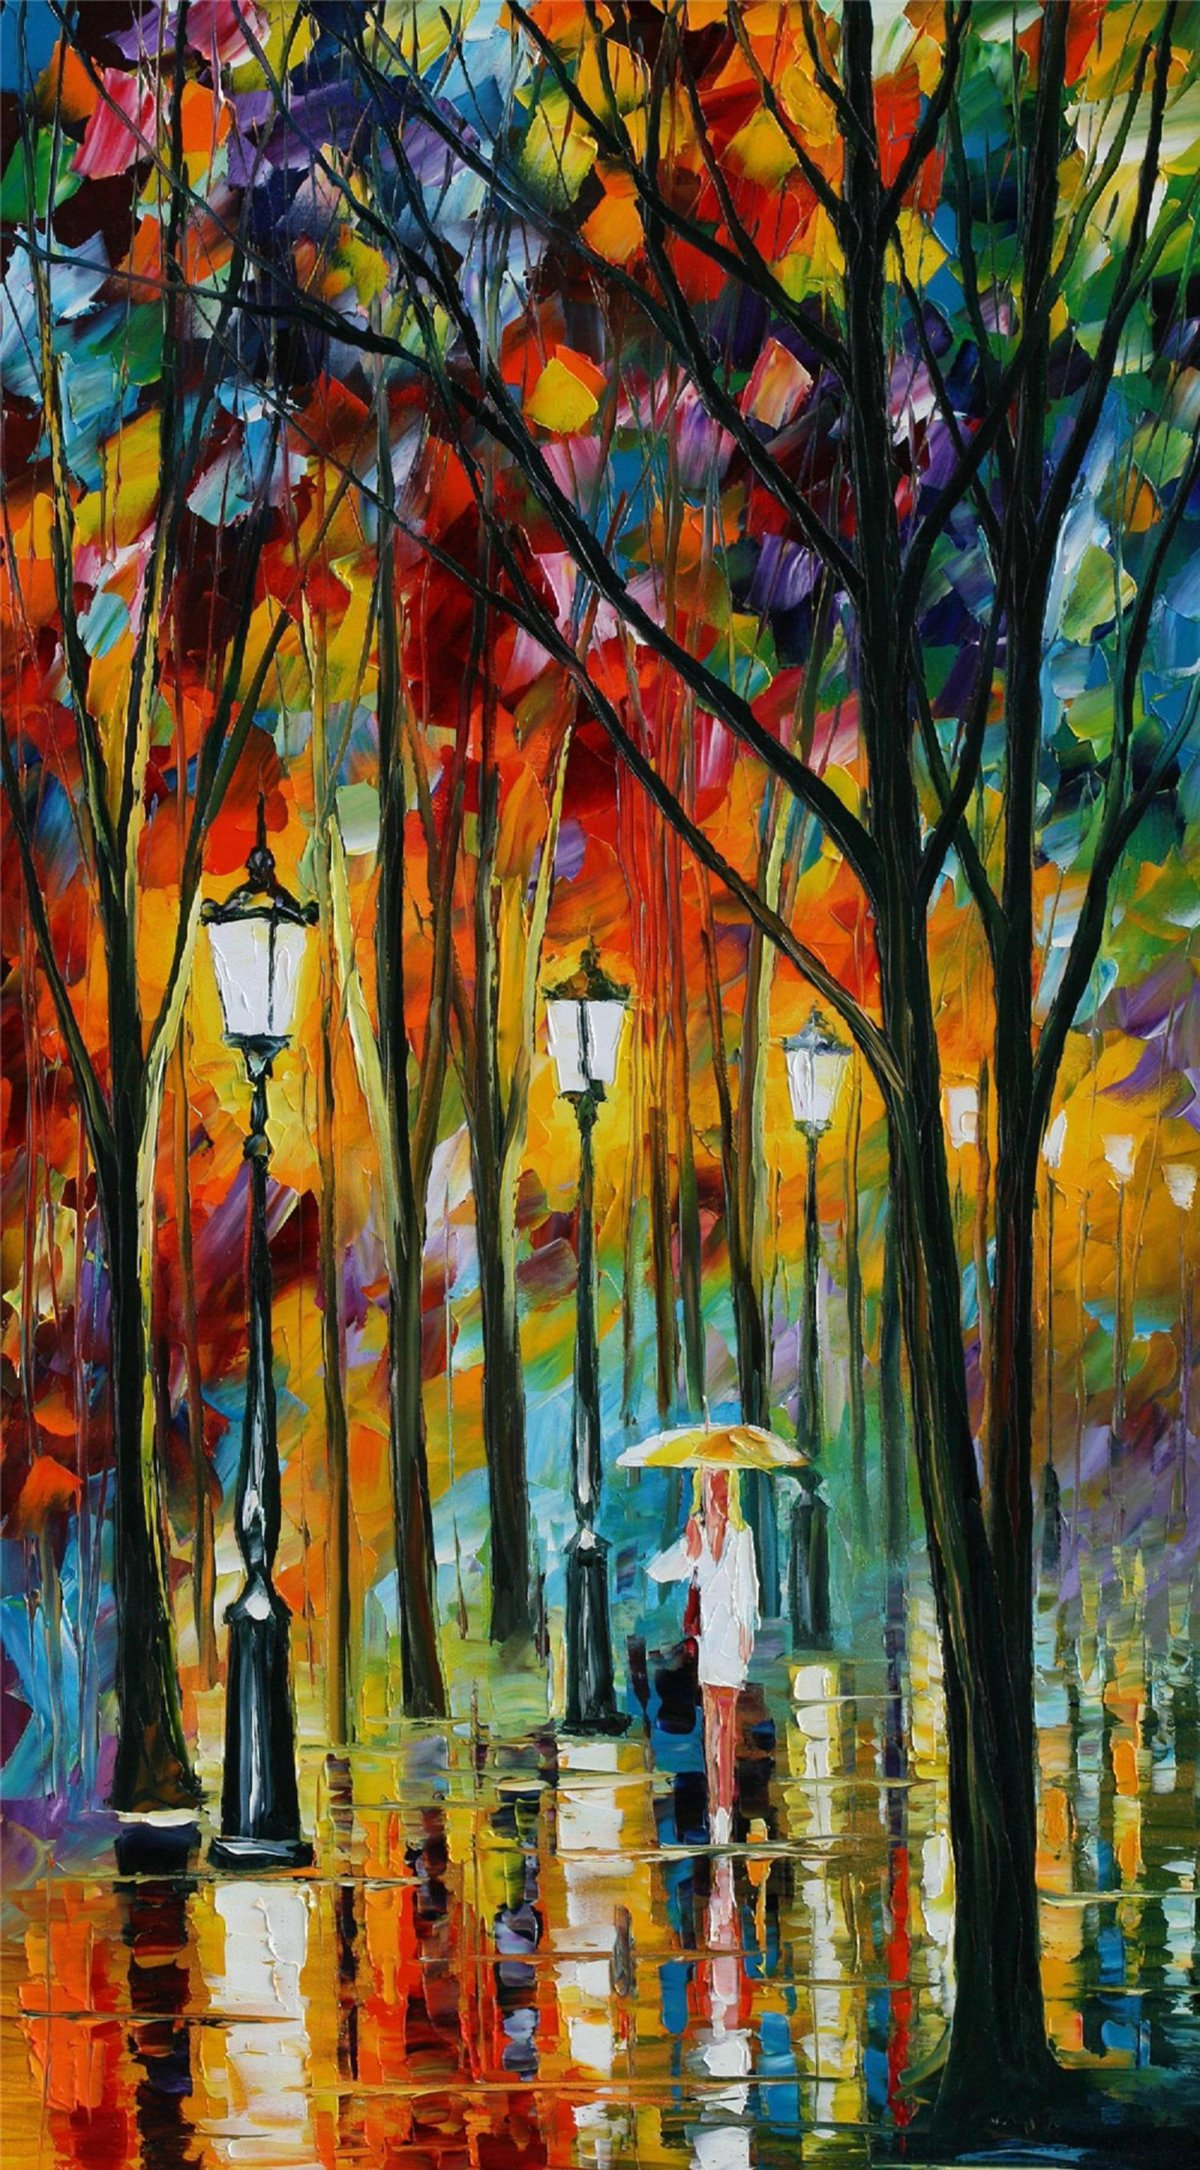 100% Hand Painted Oil Paintings Modern Abstract Oil Painting on Canvas Girl Walking in the Rain (vertical) Home Wall Decor (20X36 Inch, Oil Painting 7) by Bingo Arts